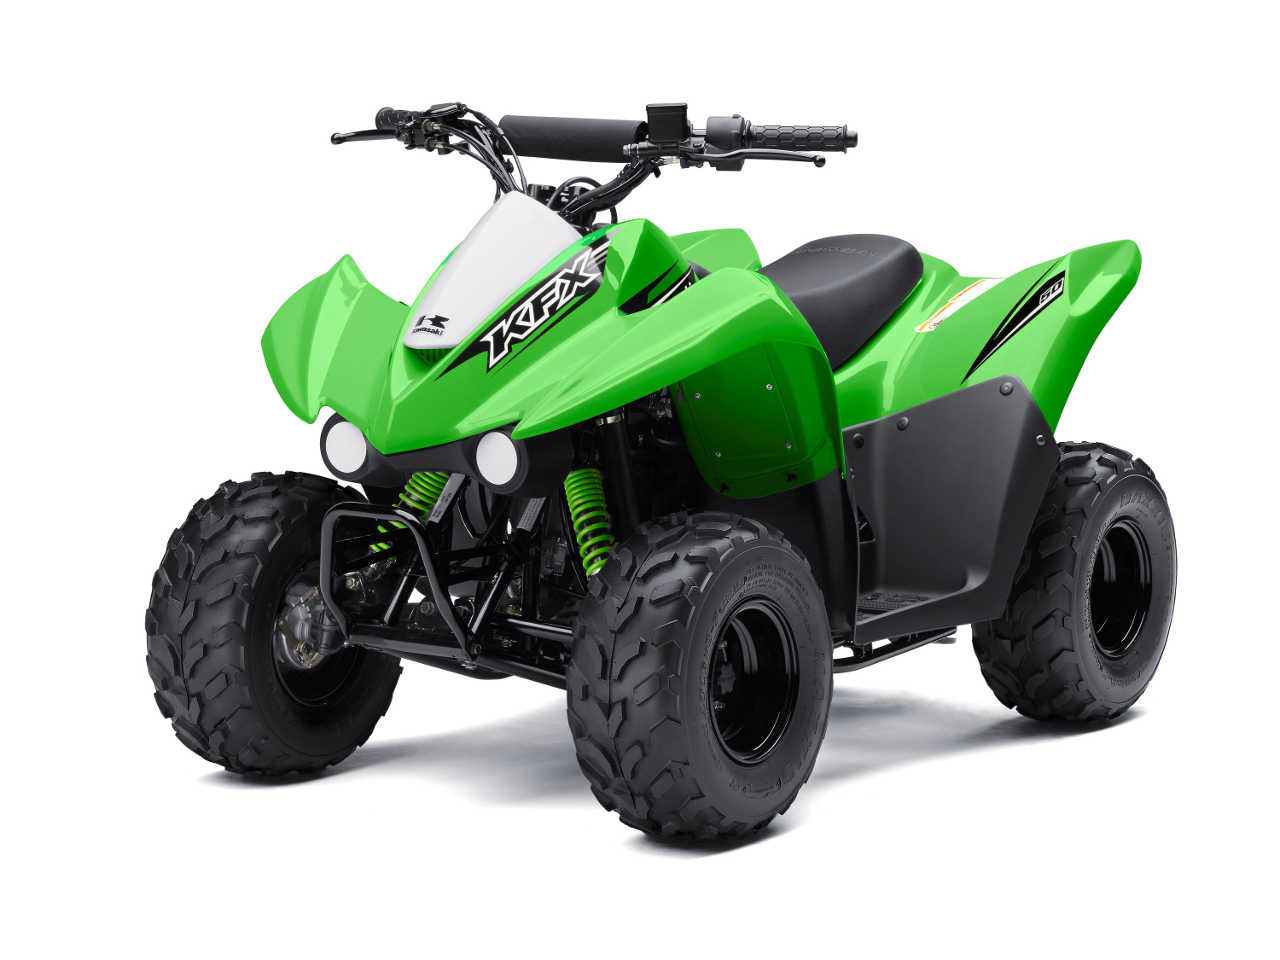 2016.kawasaki.kfx50.green_.front left.studio 2016 kawasaki brute force atv model range atv illustrated kawasaki kfx 50 wiring diagram at edmiracle.co